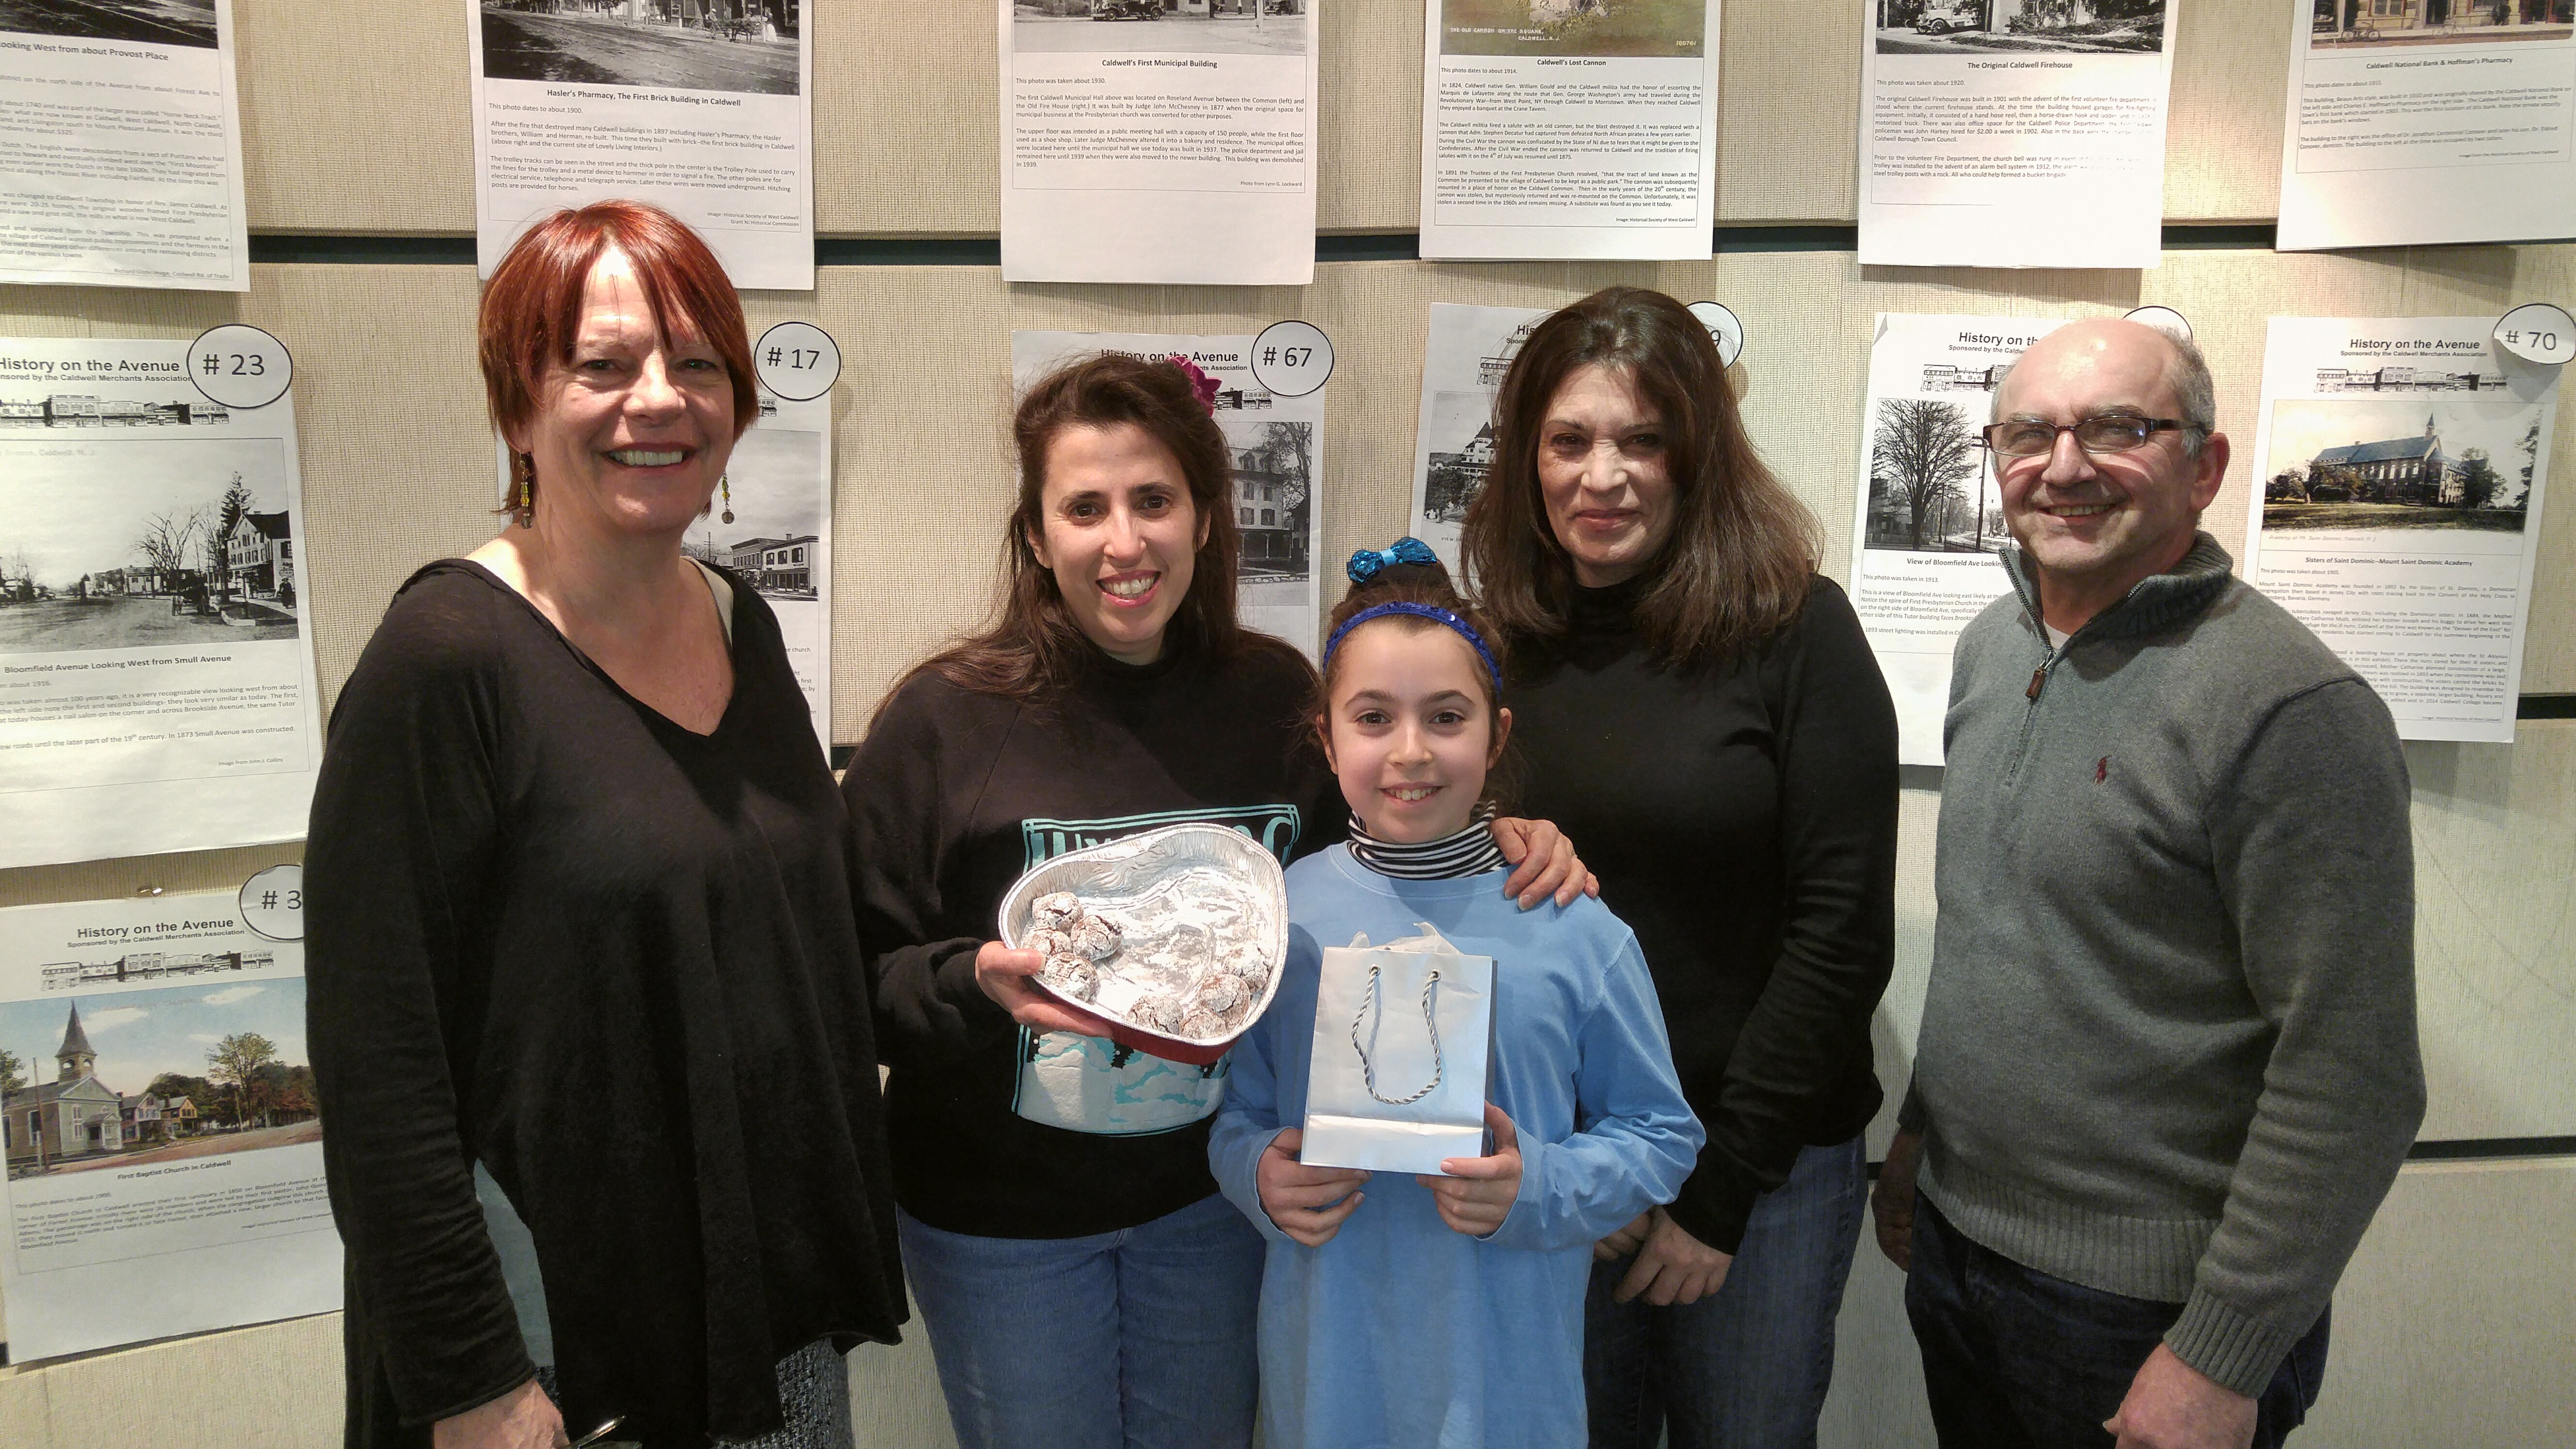 2ae0e11ffcbc686c0b3c_5._Winner_Cathy_Caragiulo__center__and_daughter_Stephanie_Rose_with_judges.jpg